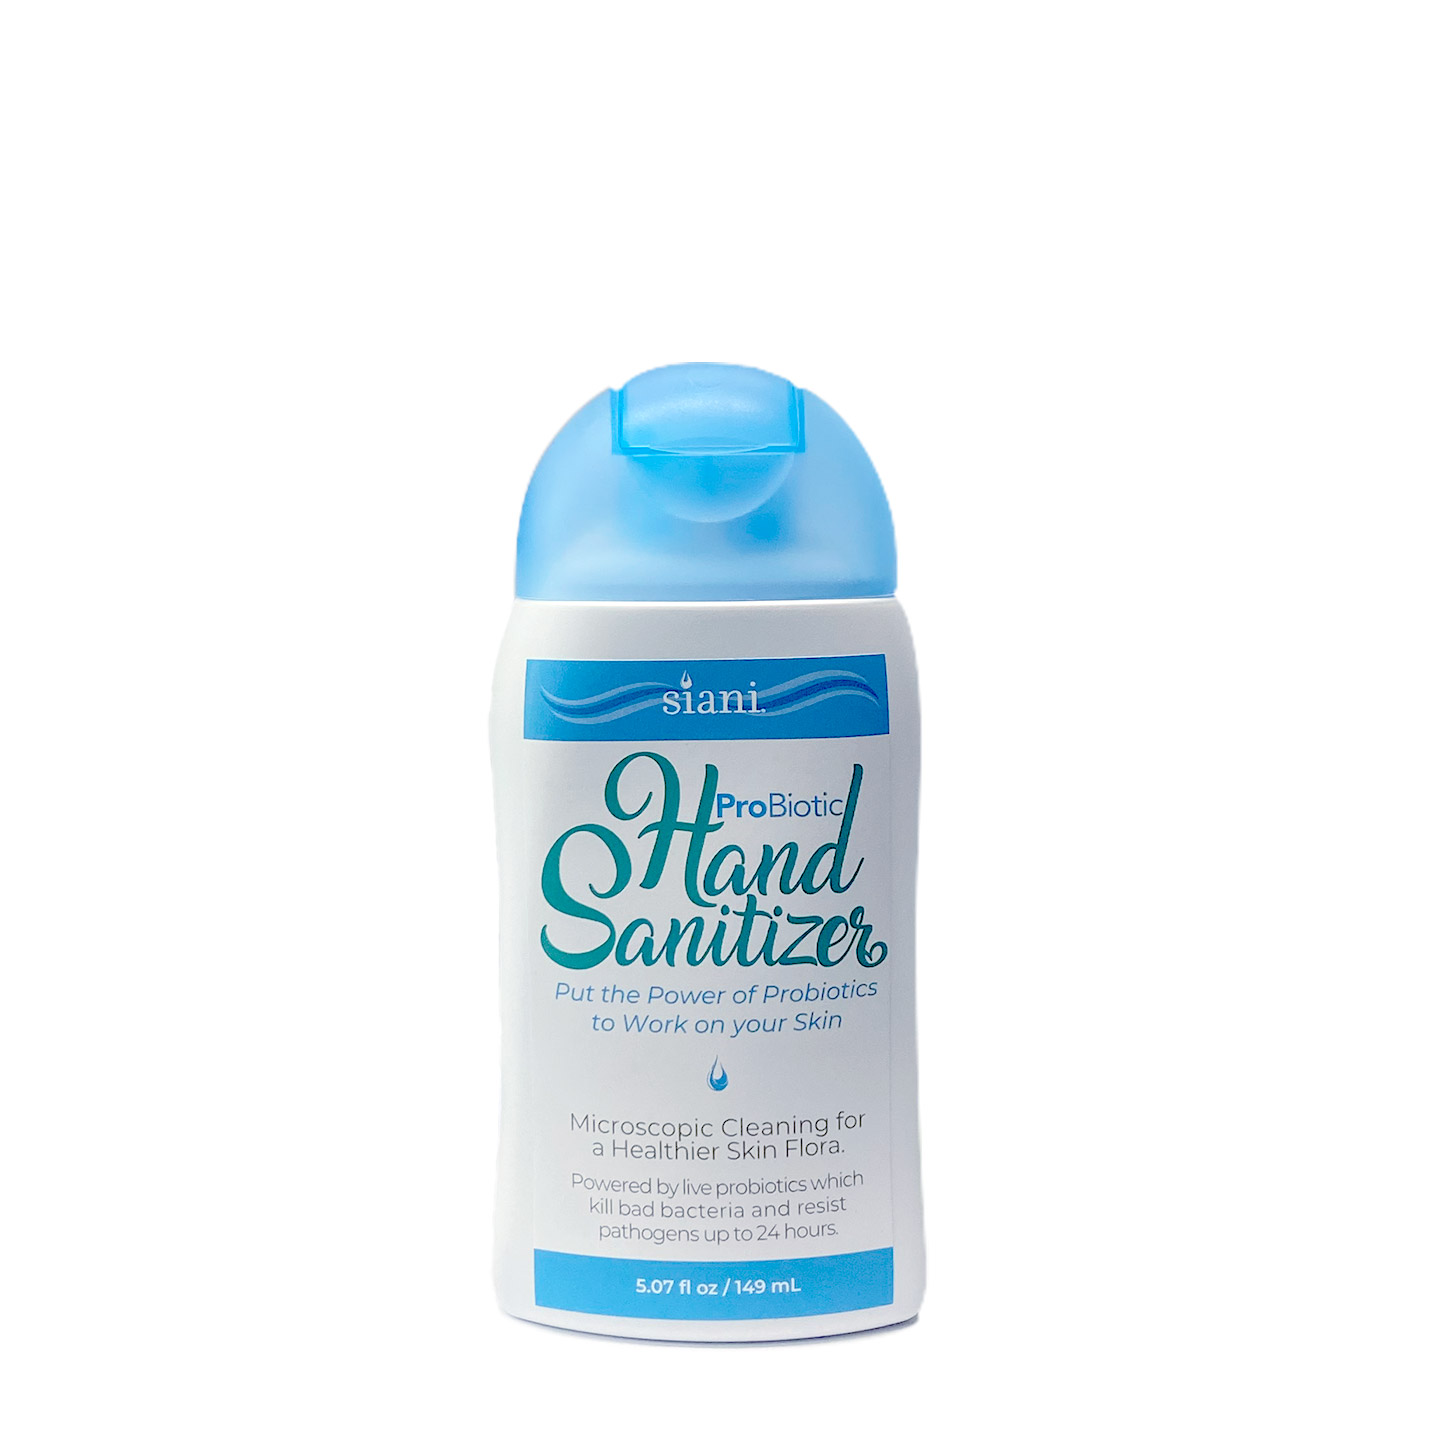 Siani Probiotic products | Probiotic Hand Sanitizer